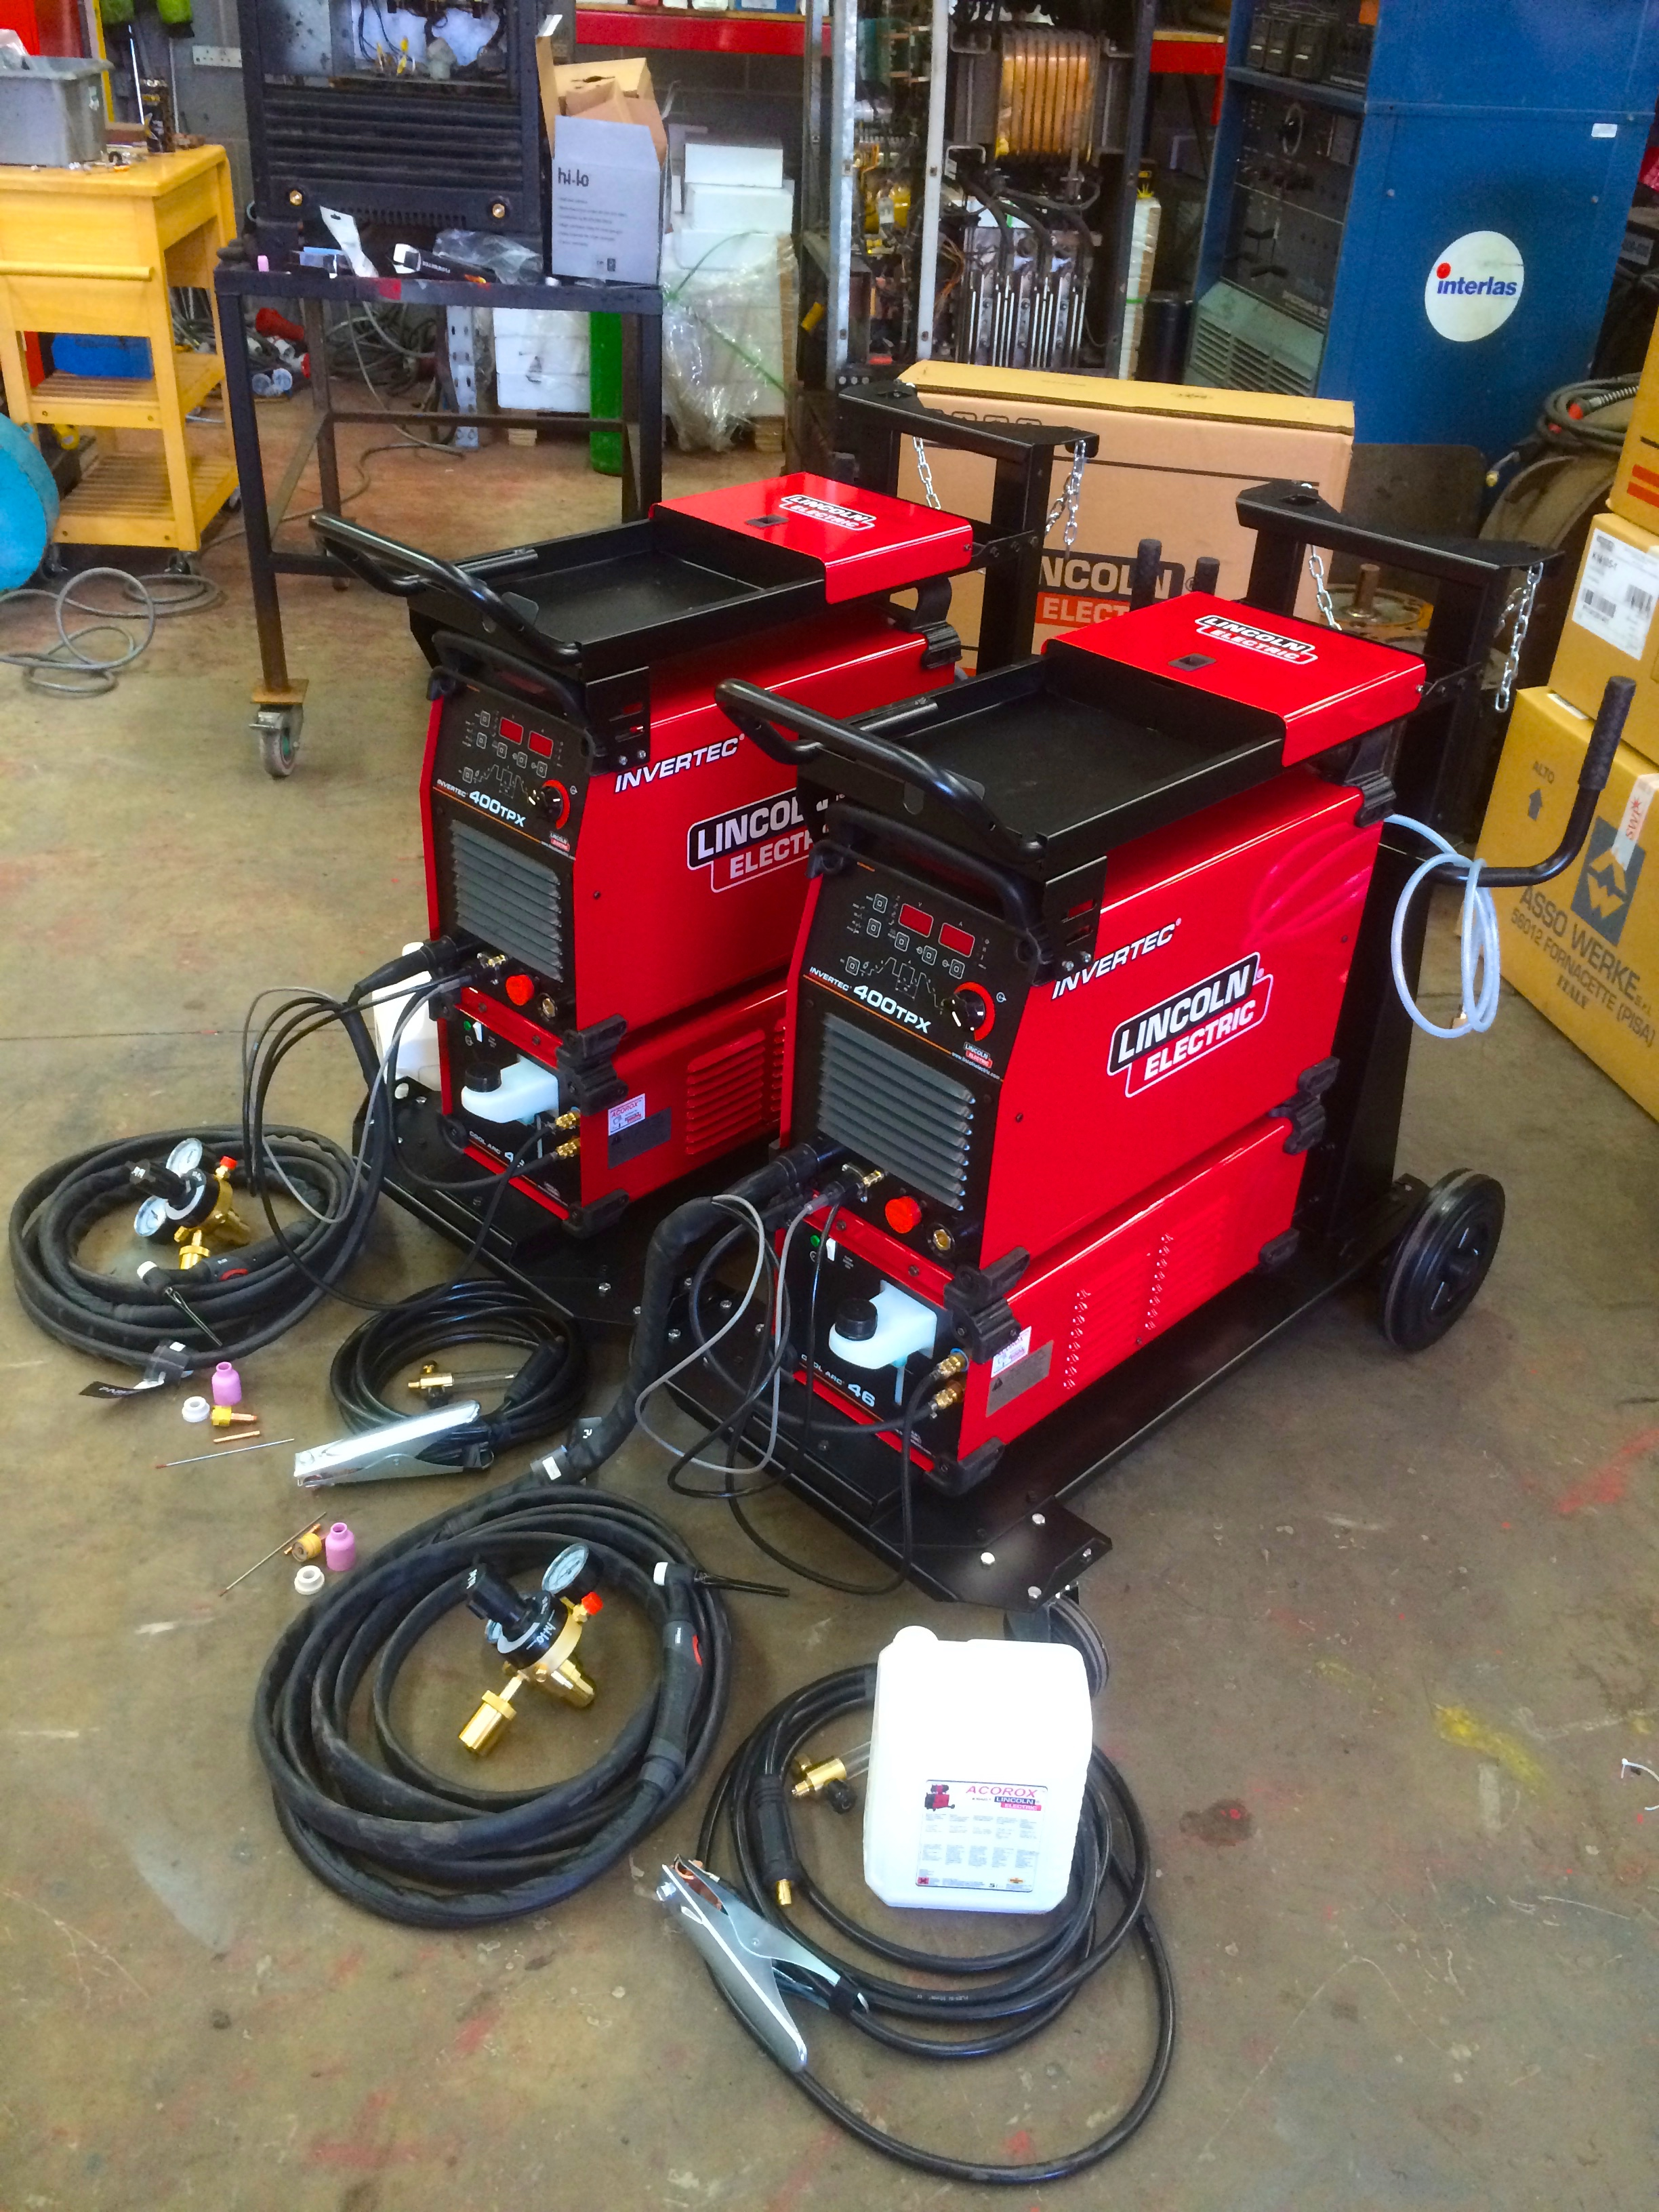 electric welding machine free welders tig lincoln dc ac cooled pretty eagle spectrum cool welder water invertec supplies shipping ltd arc